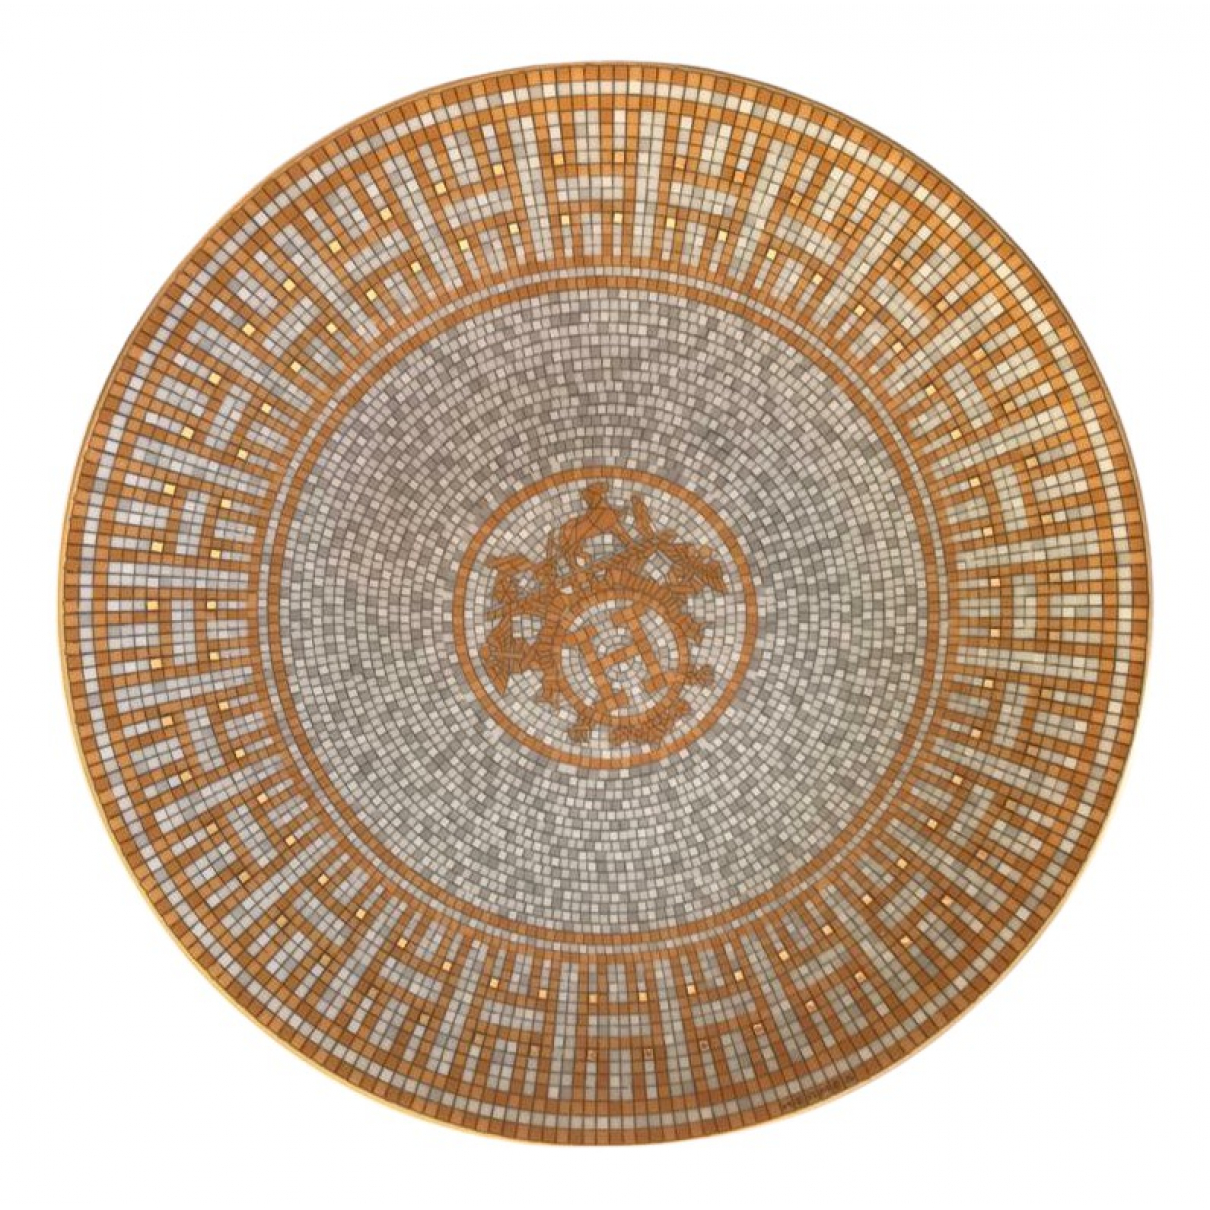 Hermes - Arts de la table Mosaique au 24 pour lifestyle en porcelaine - multicolore